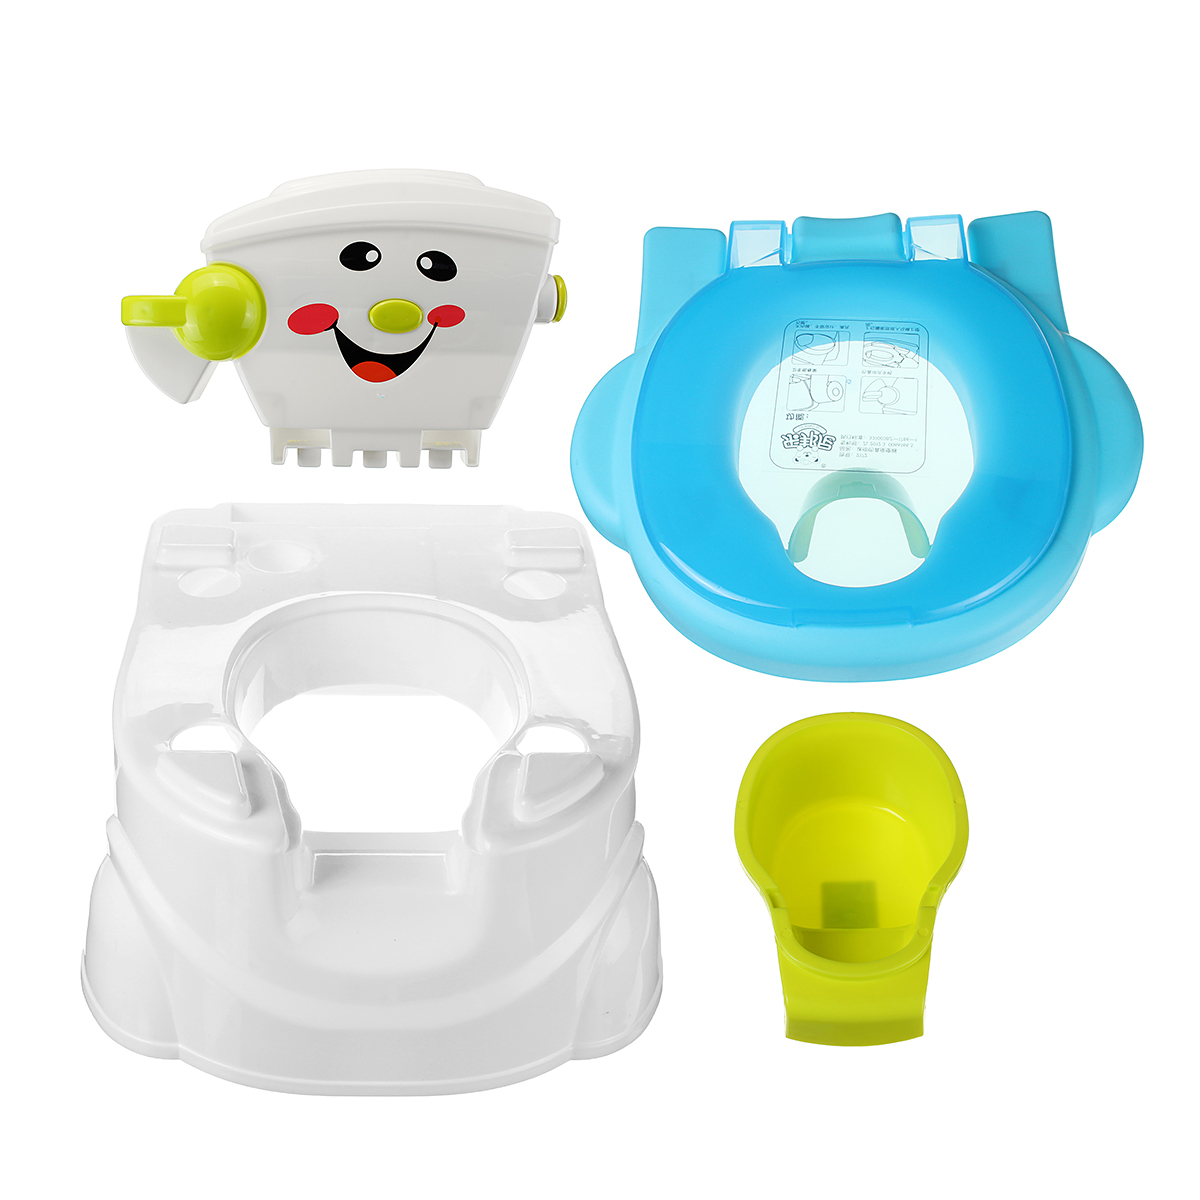 Toilettensitz Für Kleinkinder 2 In1 Tragbare Musik Kinder Baby Wc Trainer Kind Kleinkind